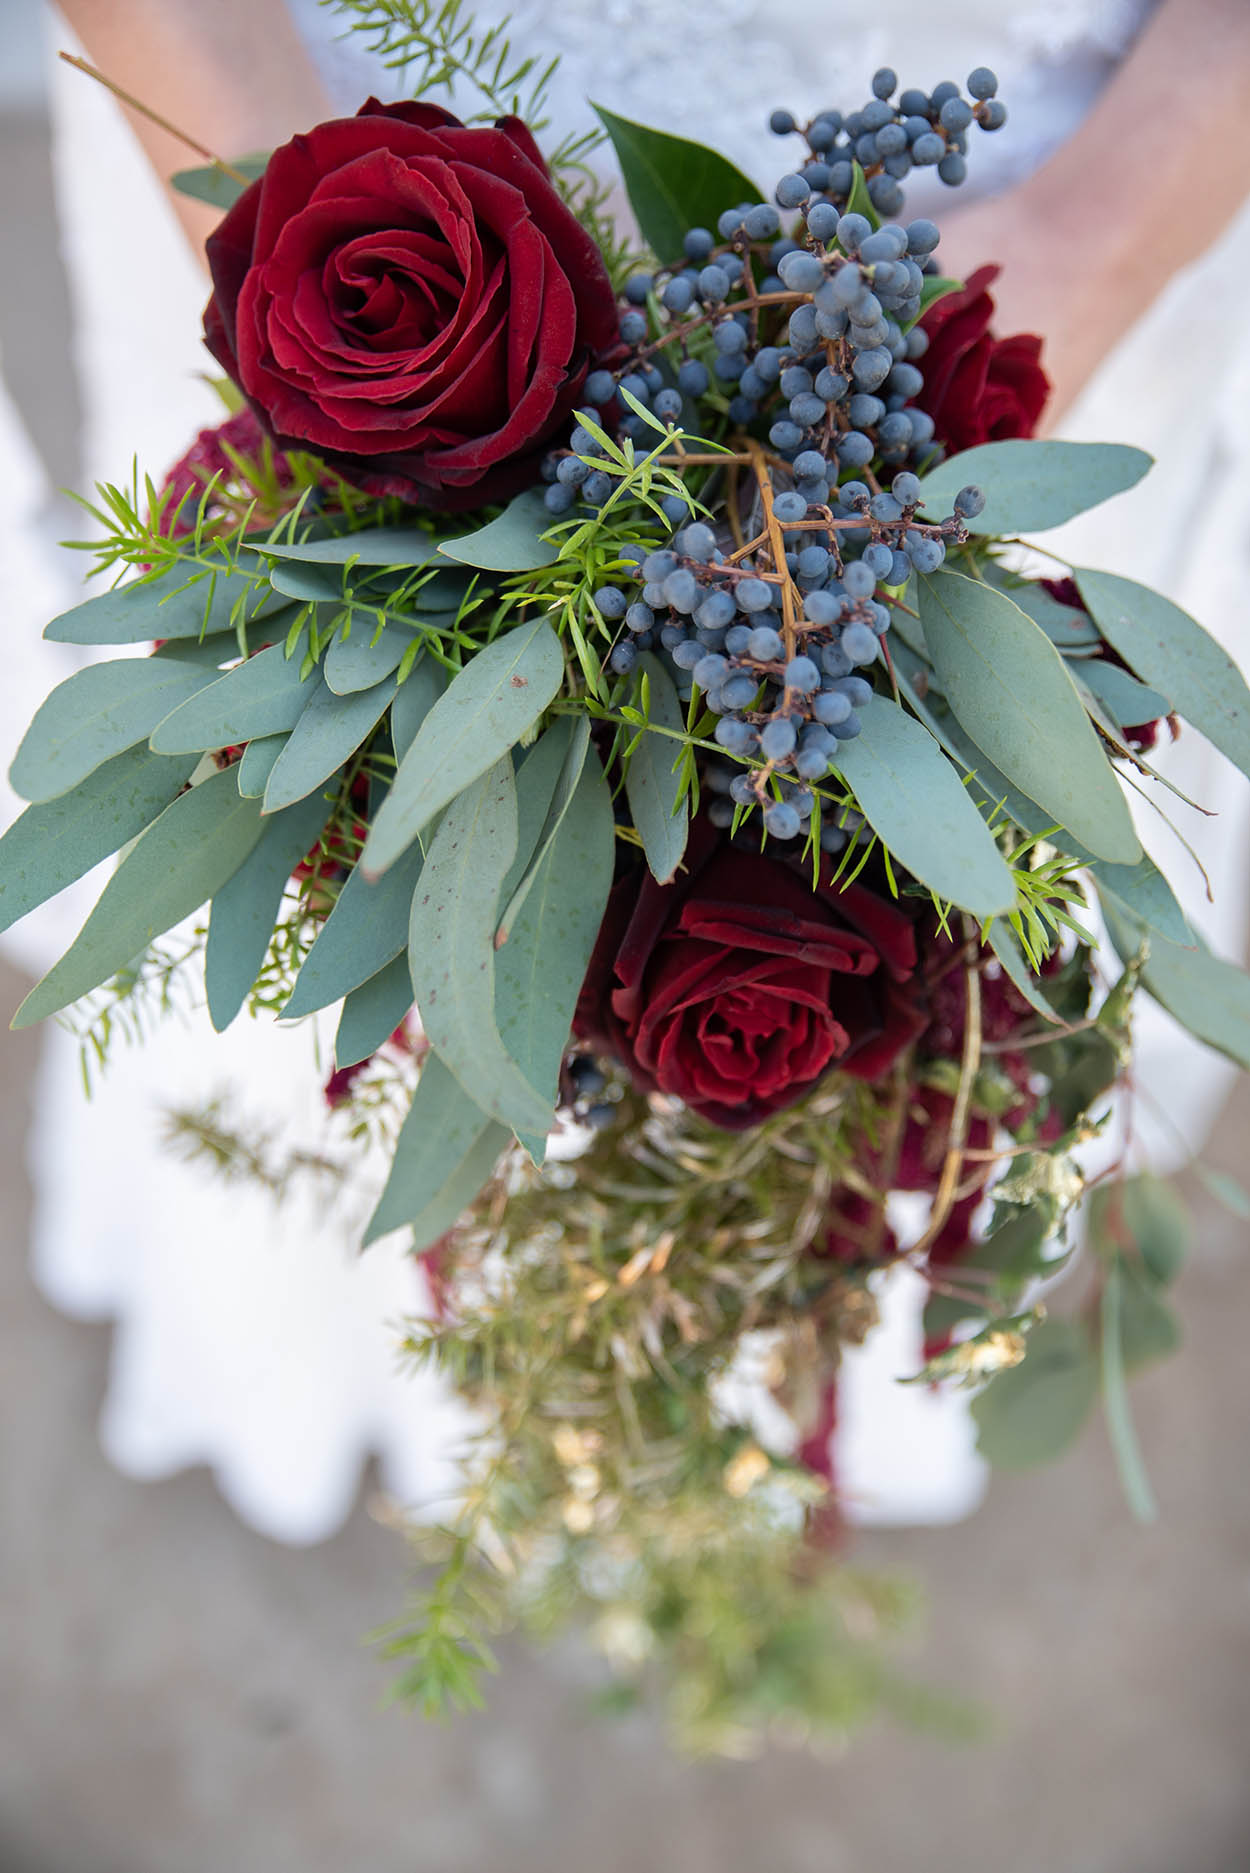 wedding photo by Mudboots at Monte Bello Estate Bloemfontein flowers red roses with berries